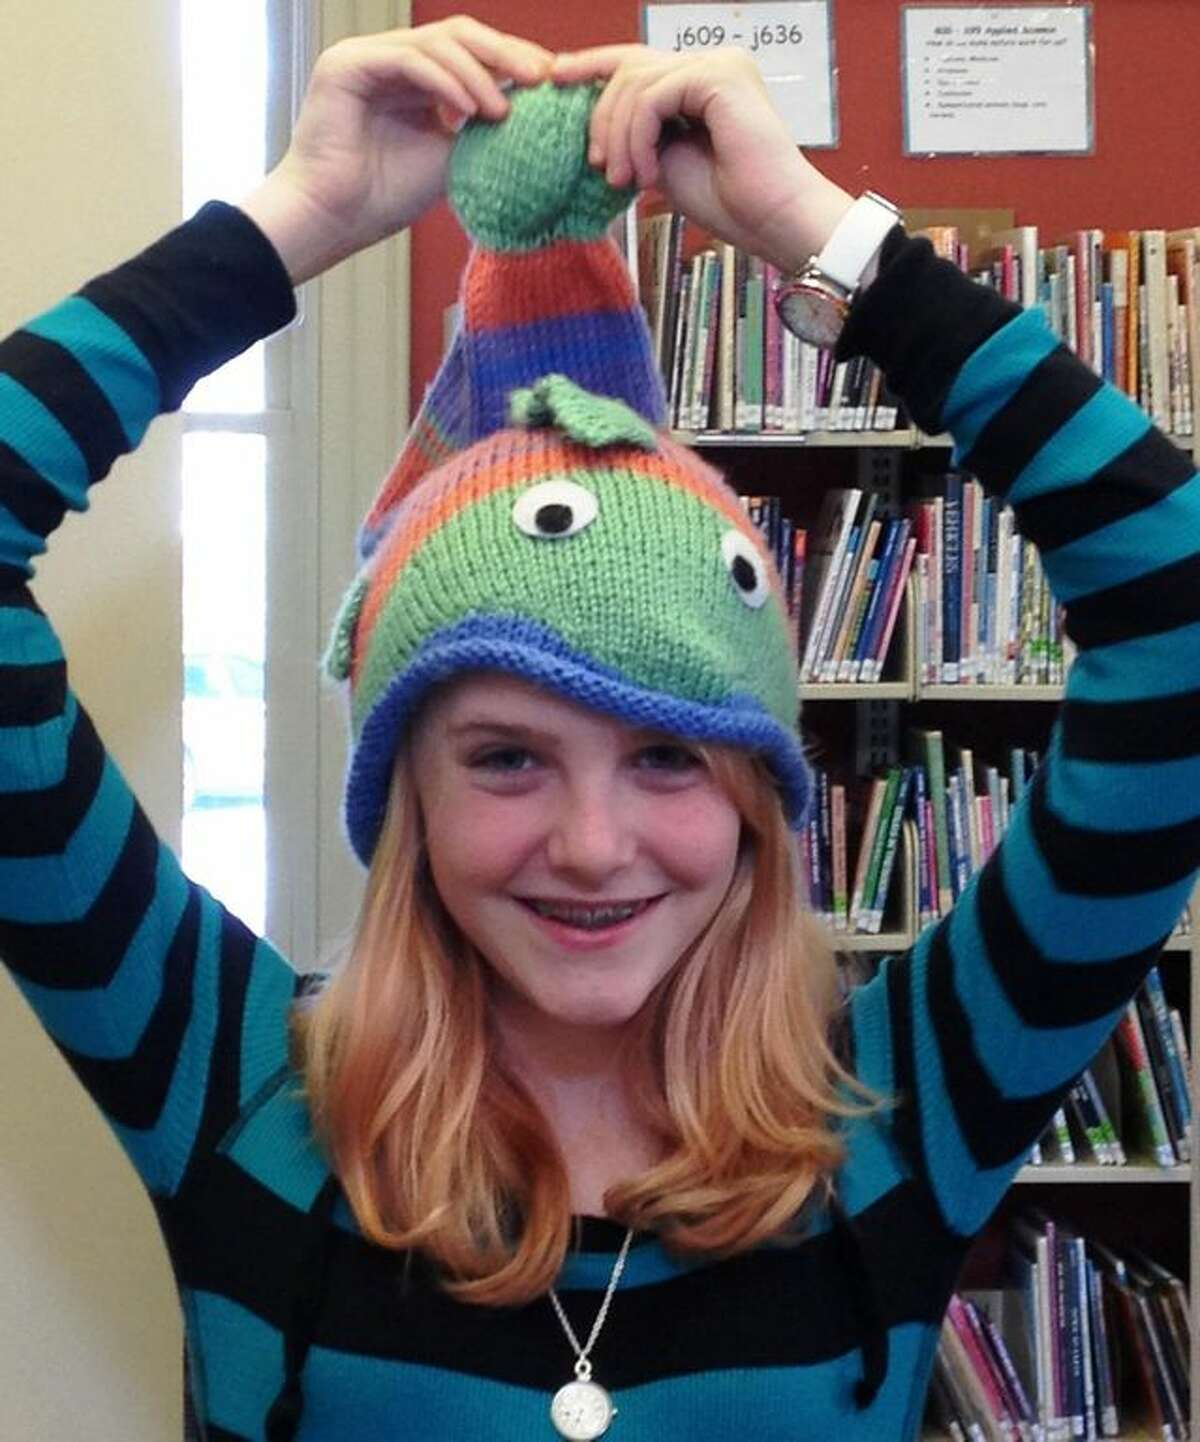 Twelve-year-old Eliana Giantonio and her fish hat that was the spark for her fish hat drive for the Connecticut Children's Medical Center Hematology/Oncology department.